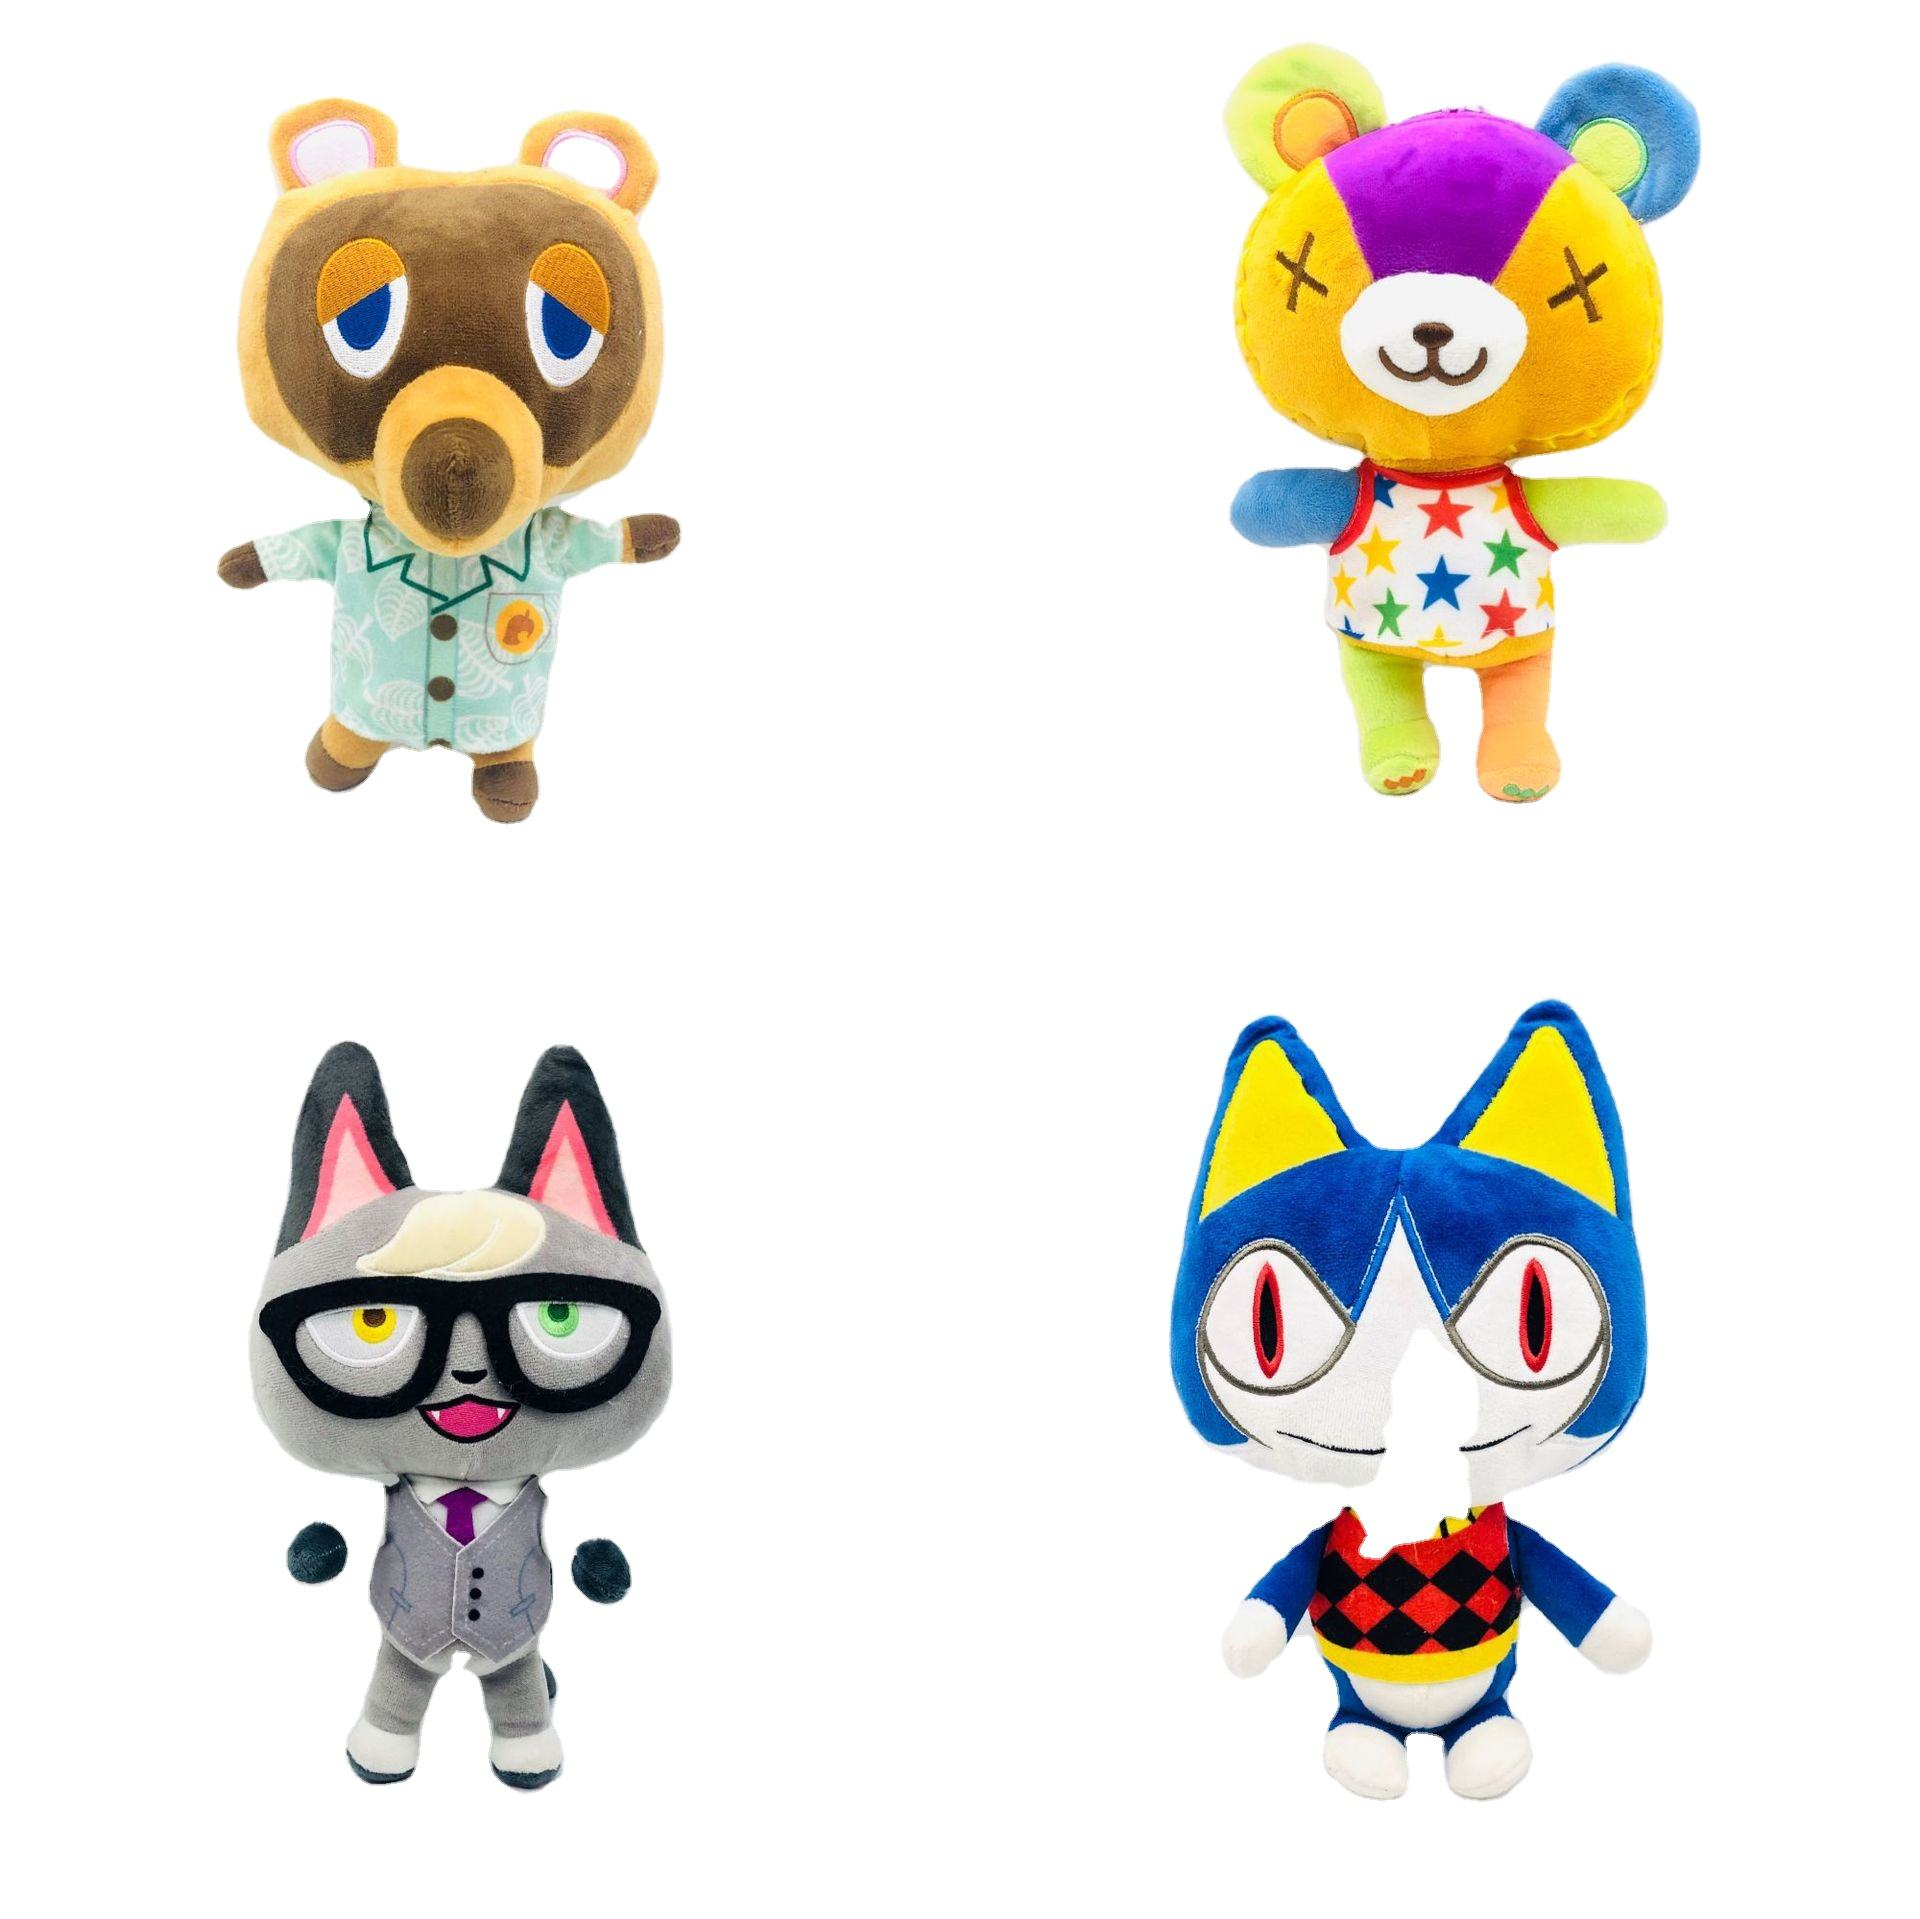 Factory Direct Sales 12 animal club doll Animal toys Crossing raccoon green leaf purse weever plush toy doll